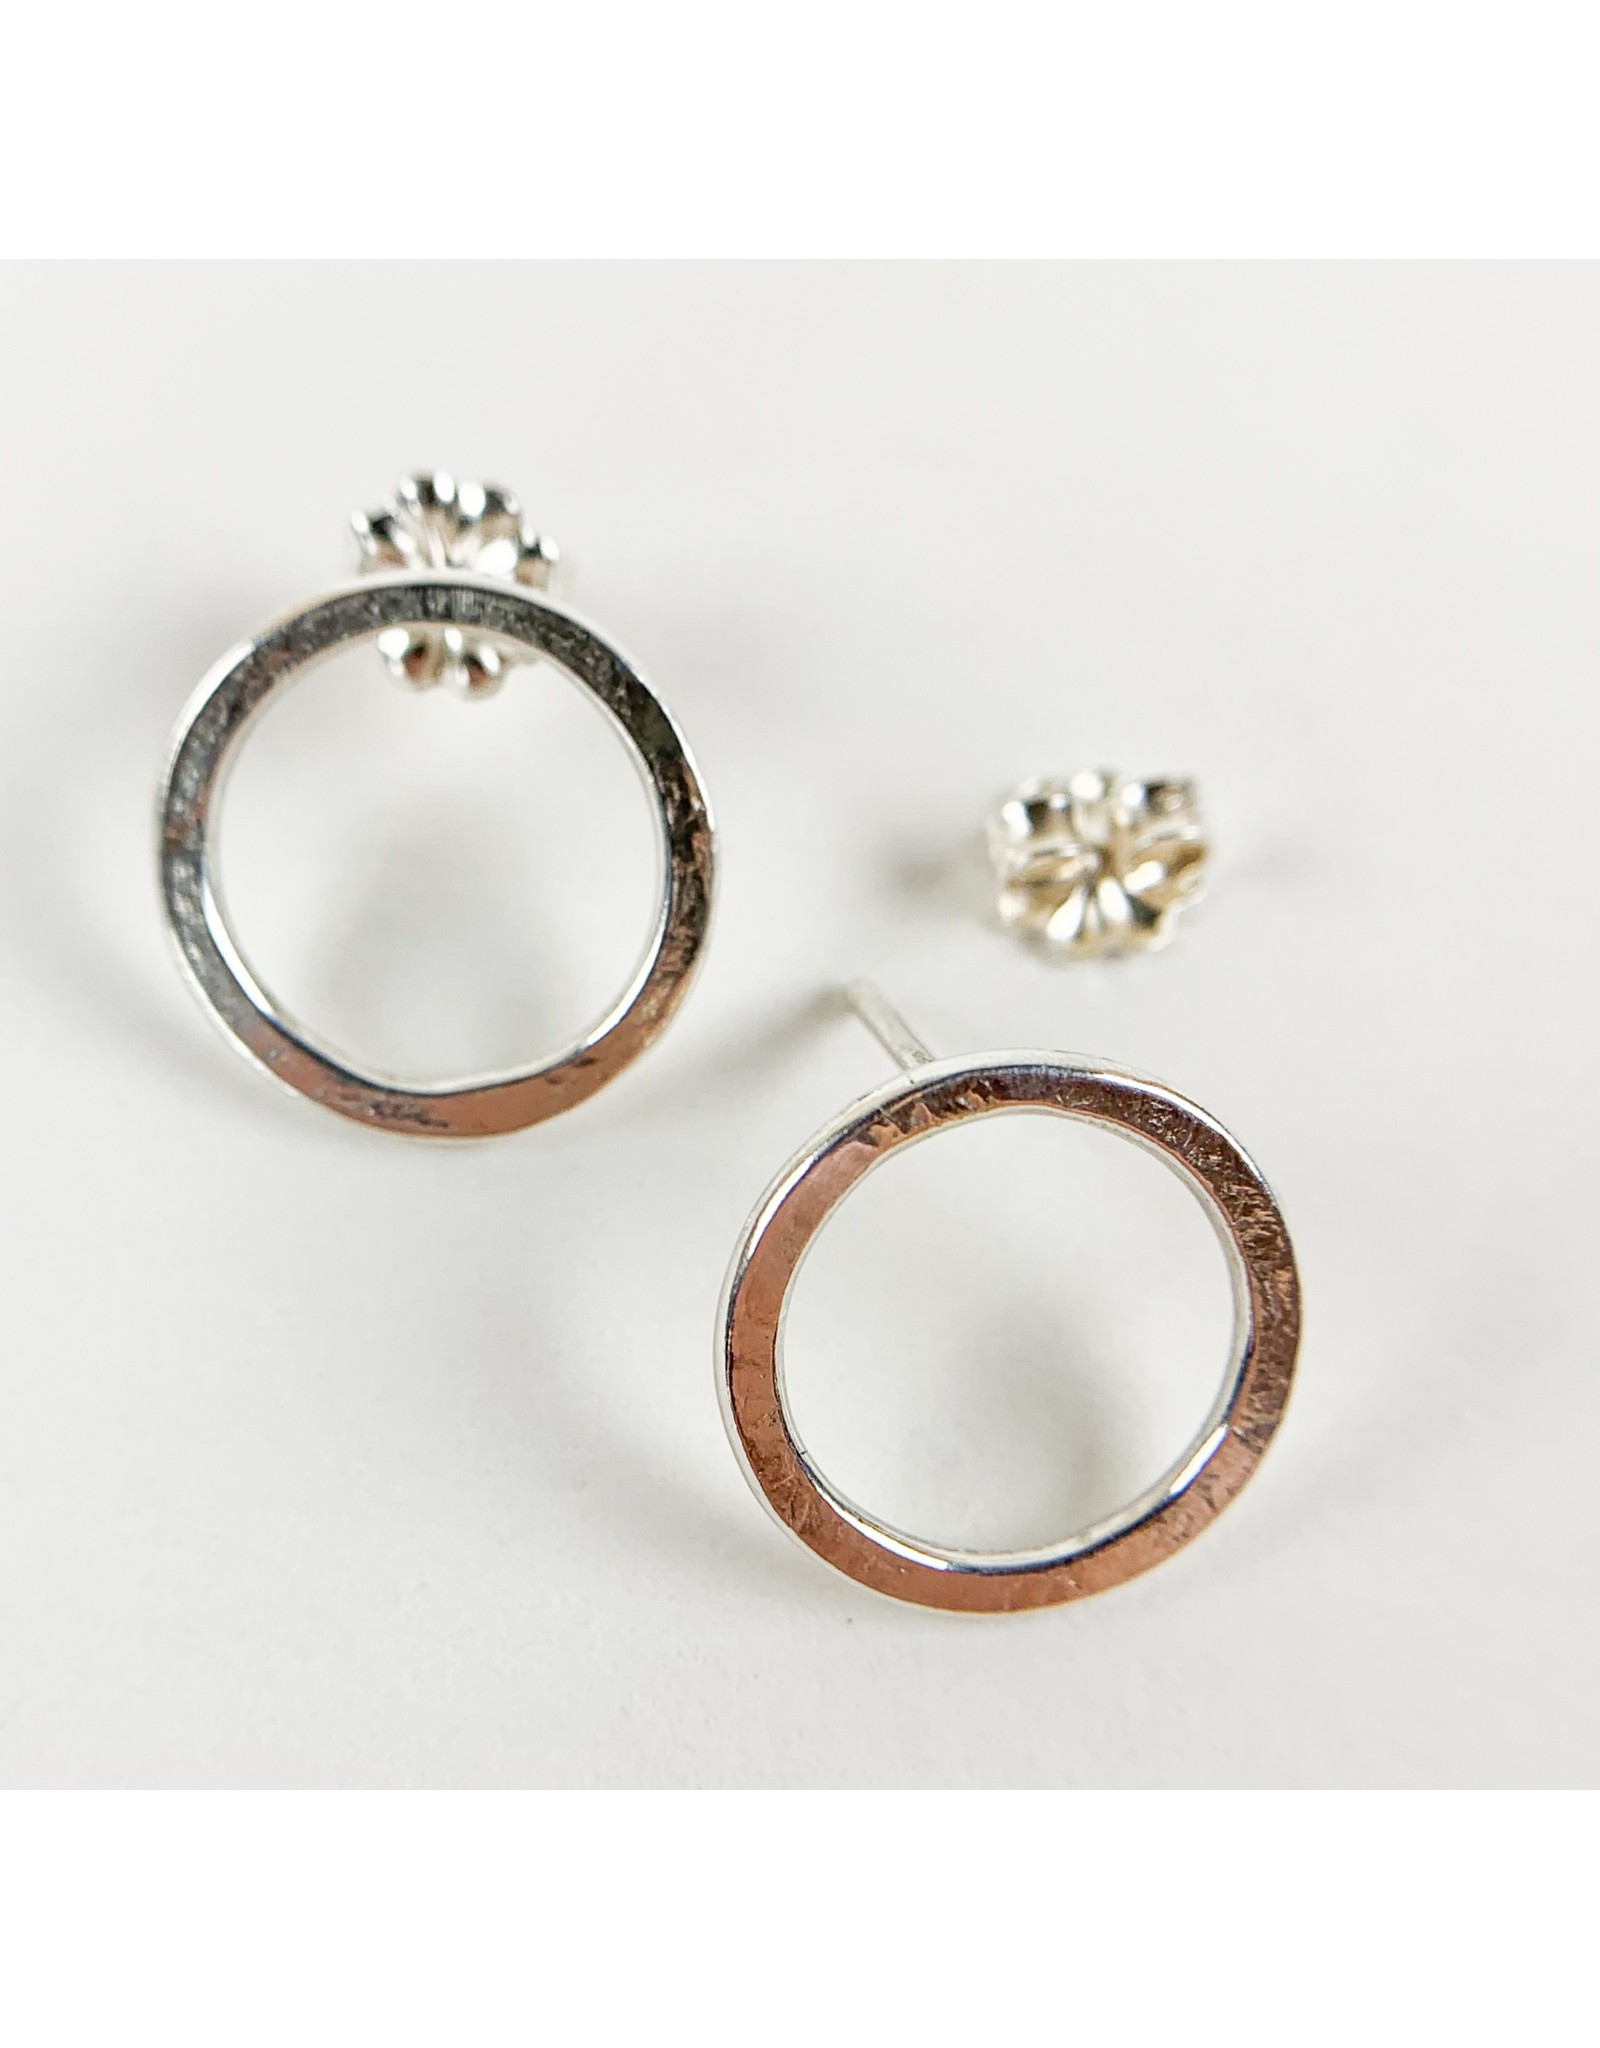 Camille Hempel Jewelry-Consignment CHE23 Large Circle Studs Sterling Pair